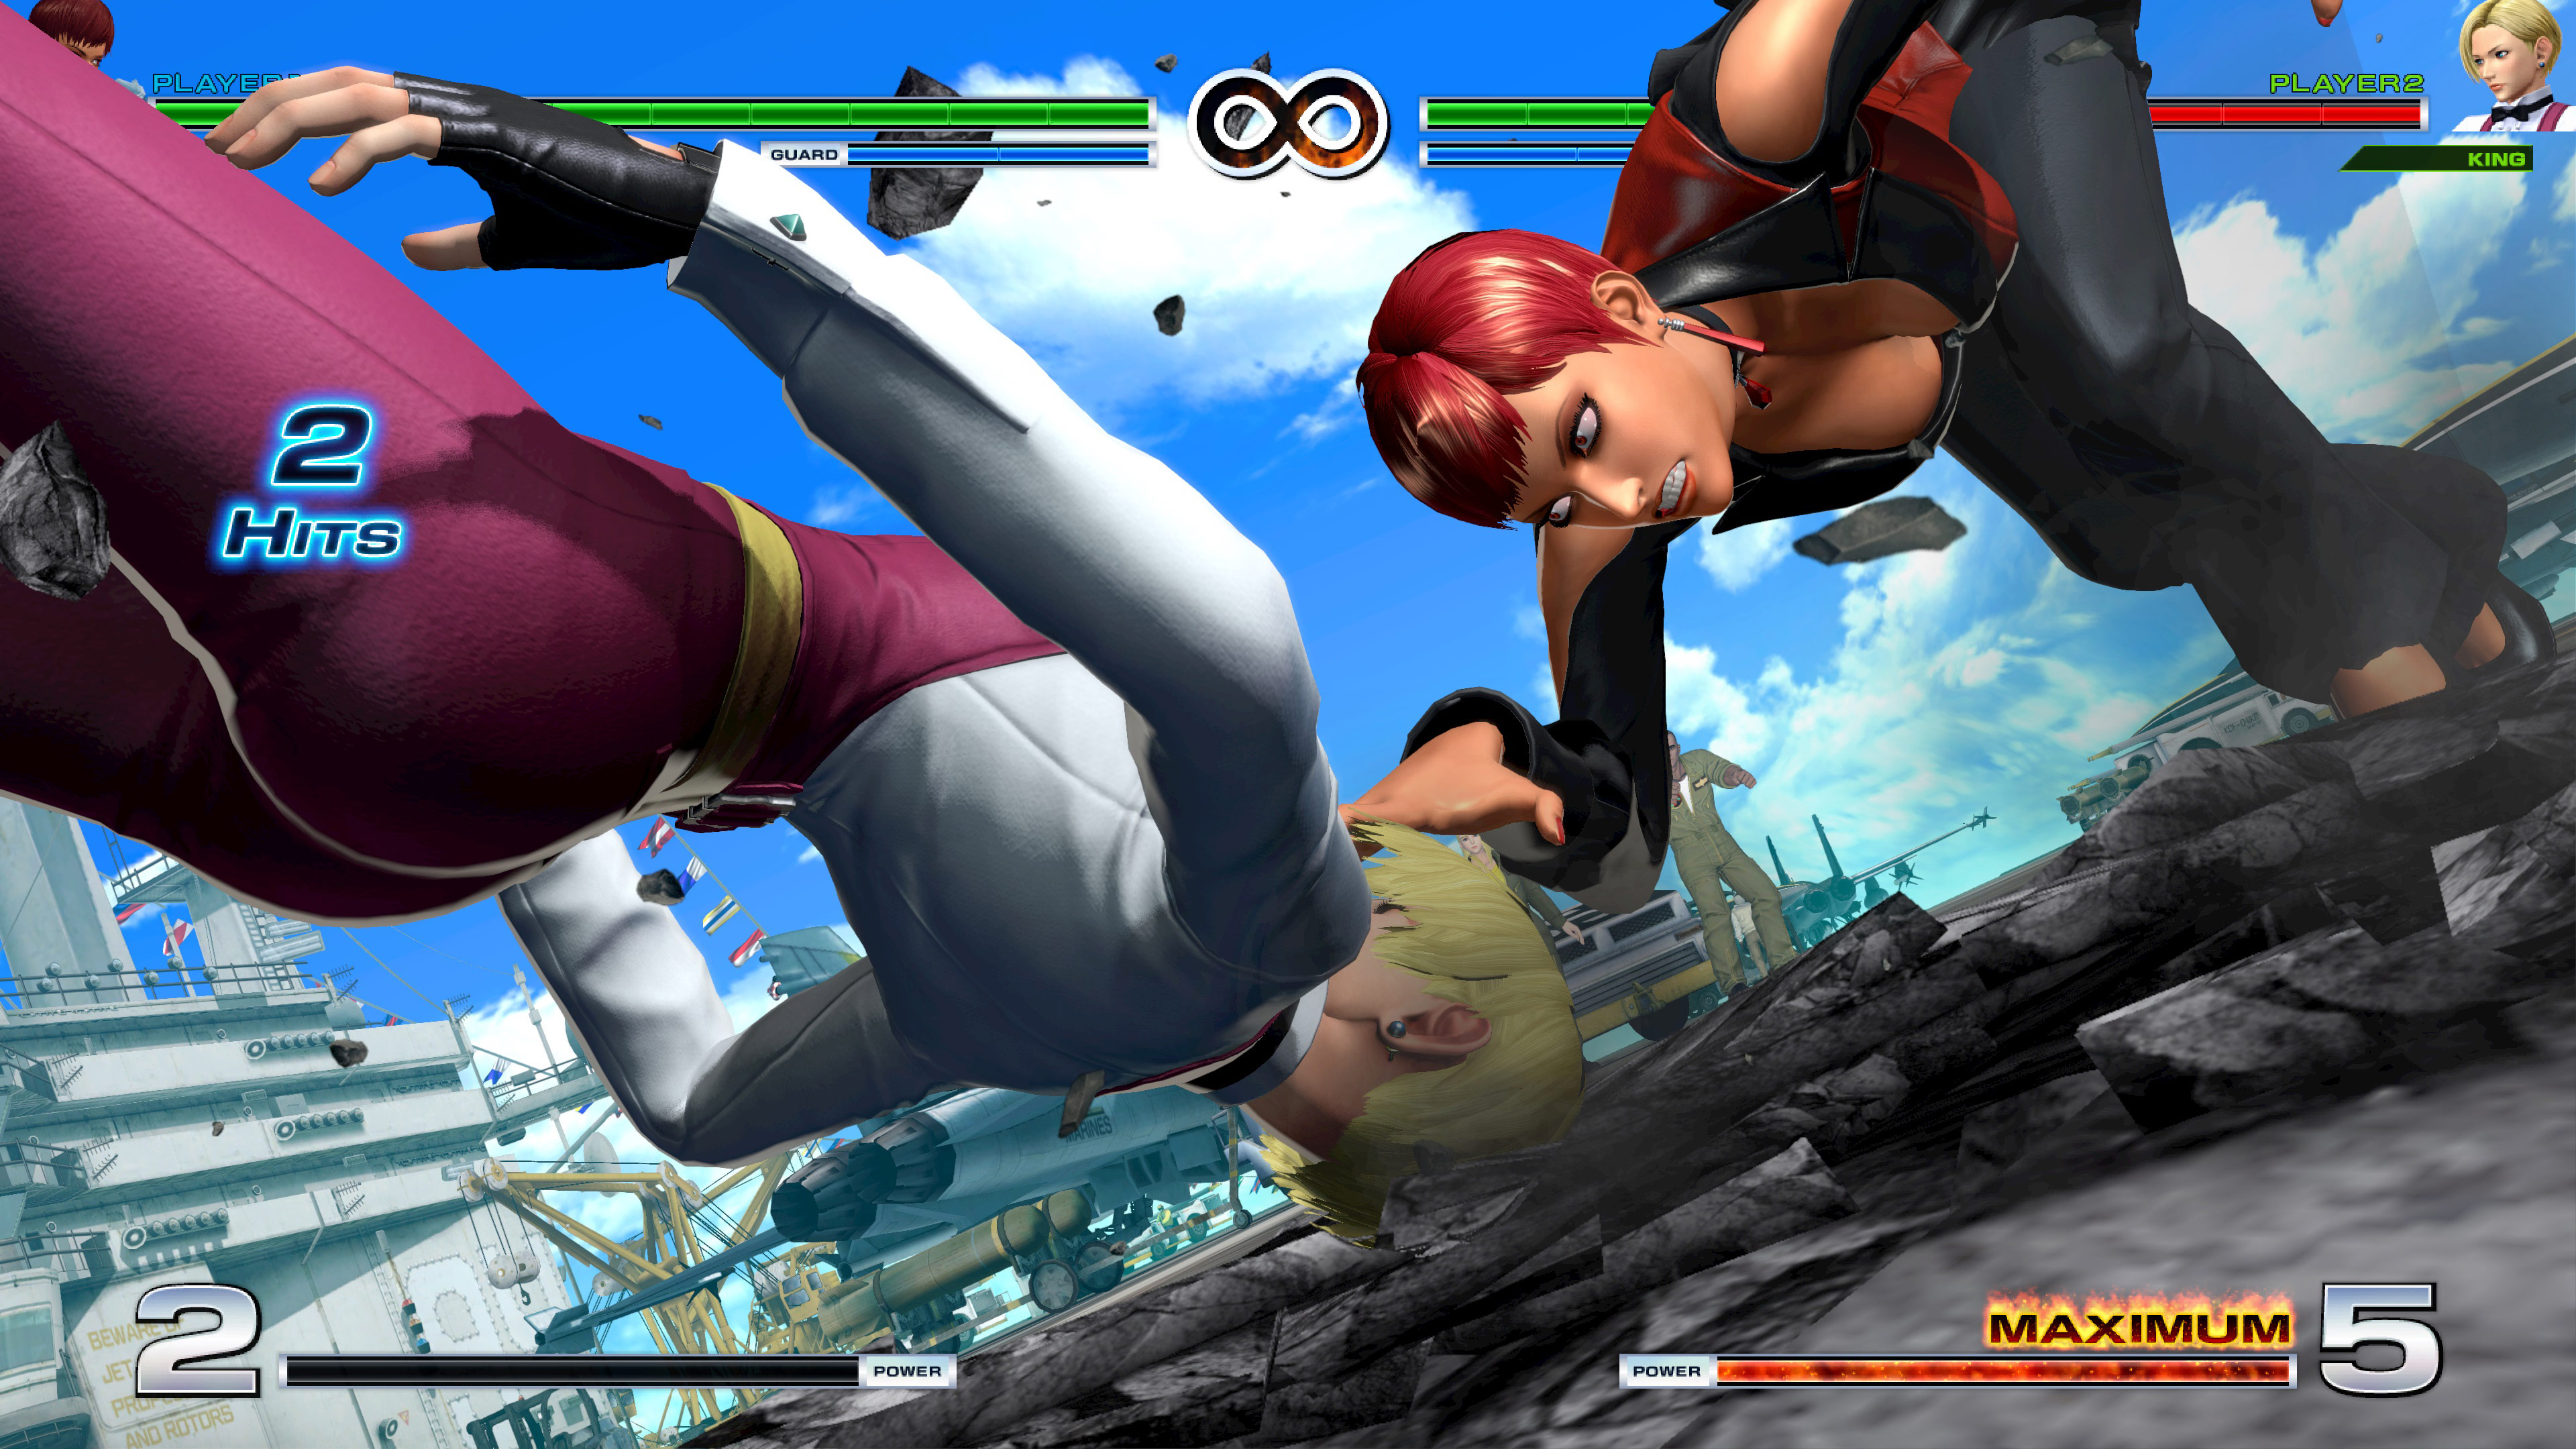 Super Hi Res KOF 14 3 Out Of 20 Image Gallery